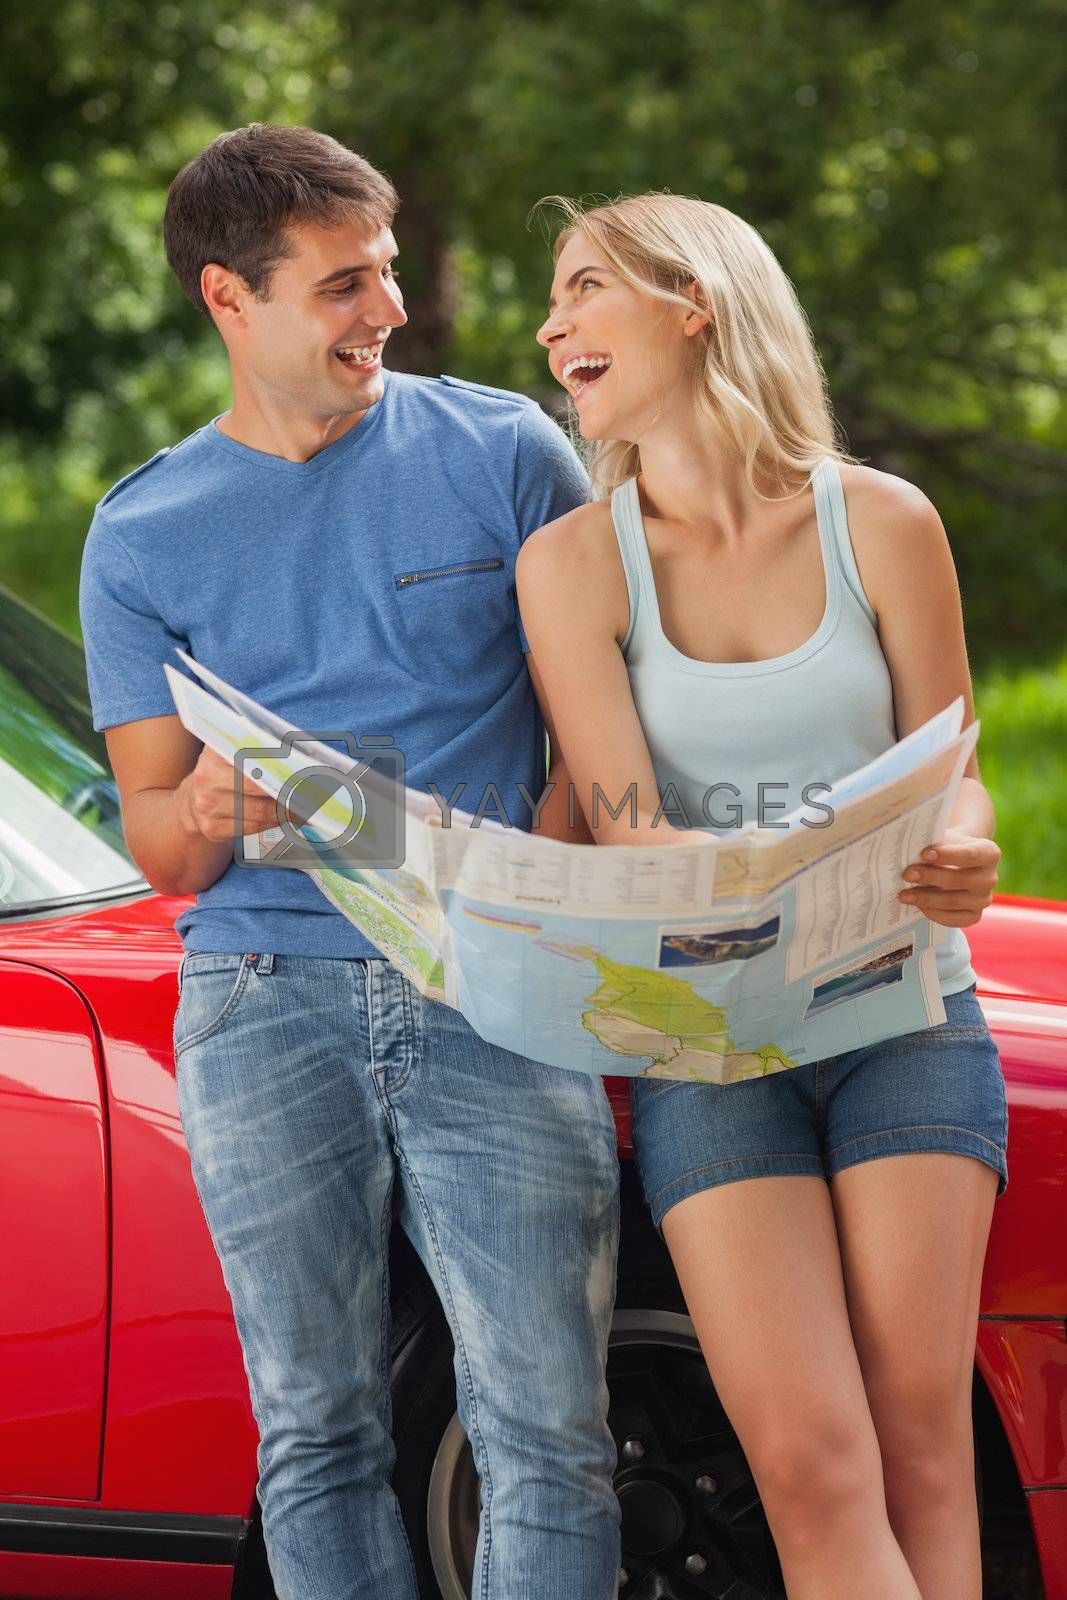 Smiling young couple reading map by Wavebreakmedia